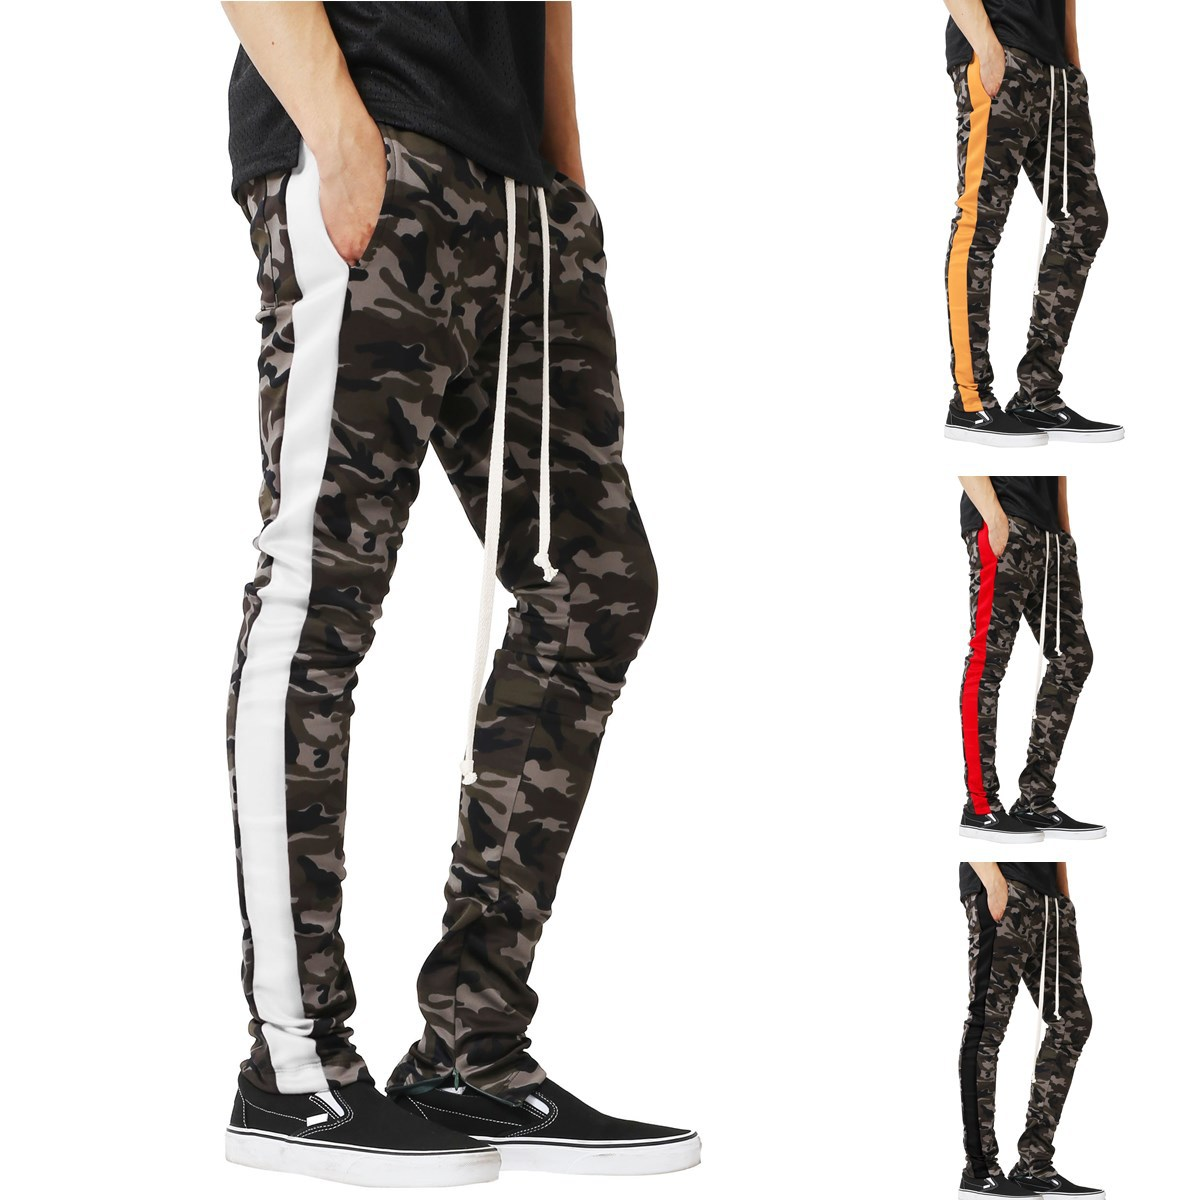 MEN'S Trousers Men Slim Fit Athletic Pants Camouflage Printed Mixed Colors Foot Mouth Zipper Casual Trousers